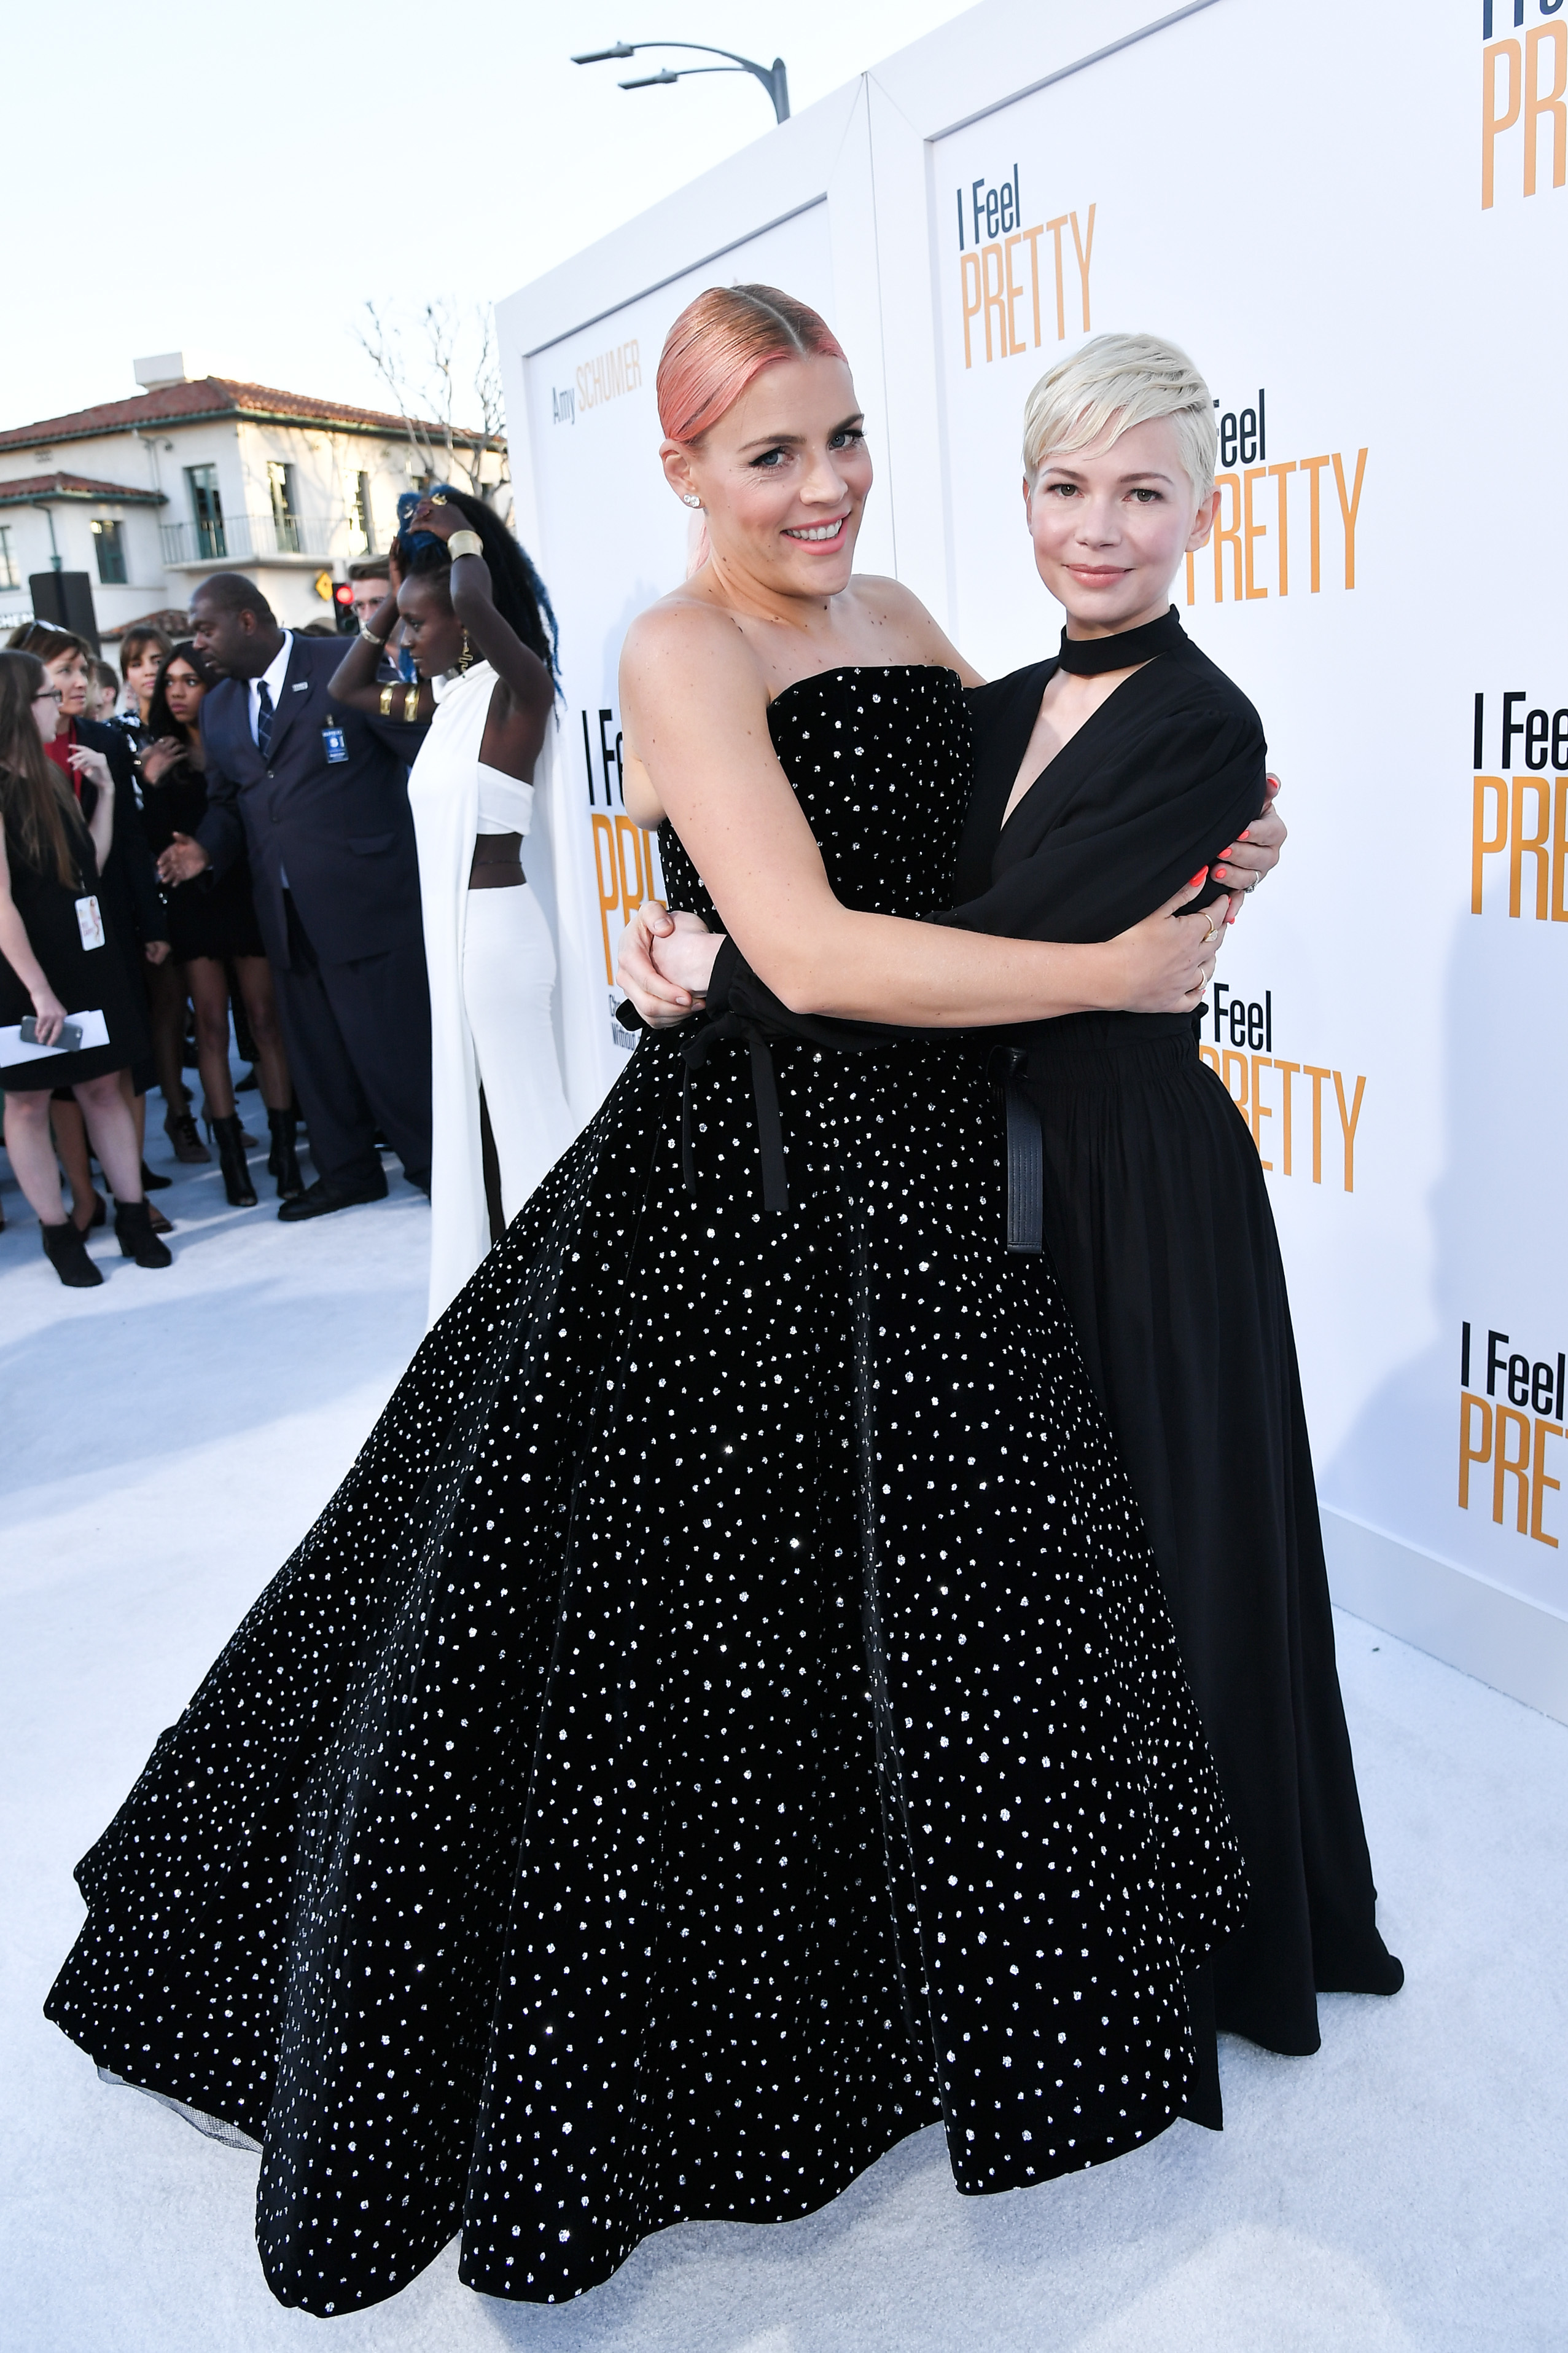 """Busy Philipps and Michelle Williams attend the """"I Feel Pretty"""" premiere in Los Angeles on April 17, 2018."""